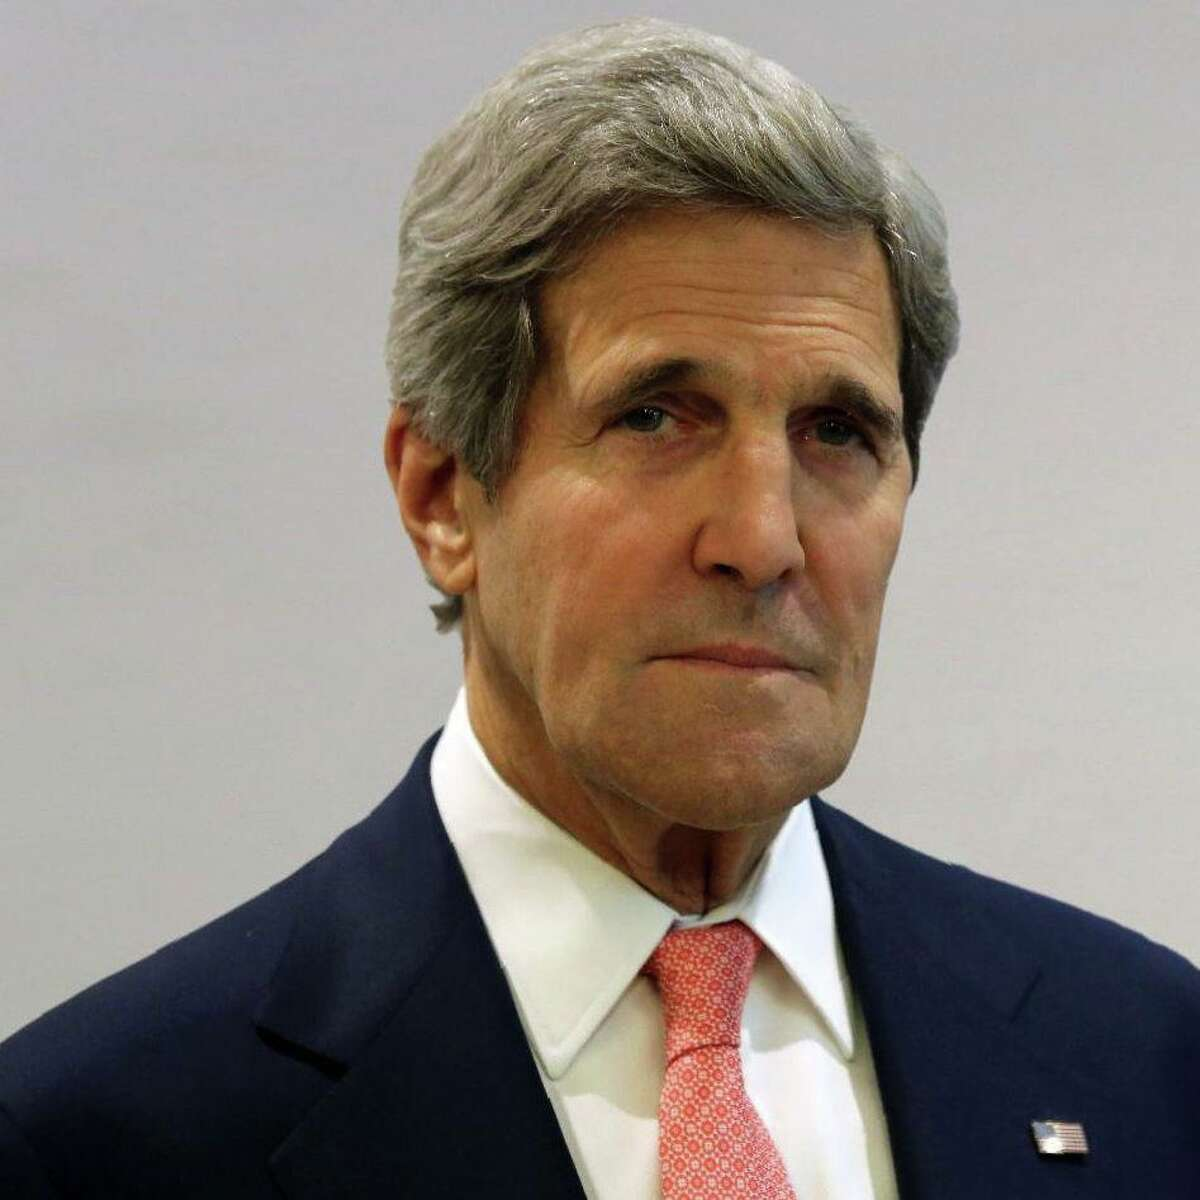 """John Kerry, the first-ever Presidential Envoy on Climate, is a panelist for the next Conversation on the Green Sept. 26, """"Climate Change: Sunrise or Sunset?"""""""